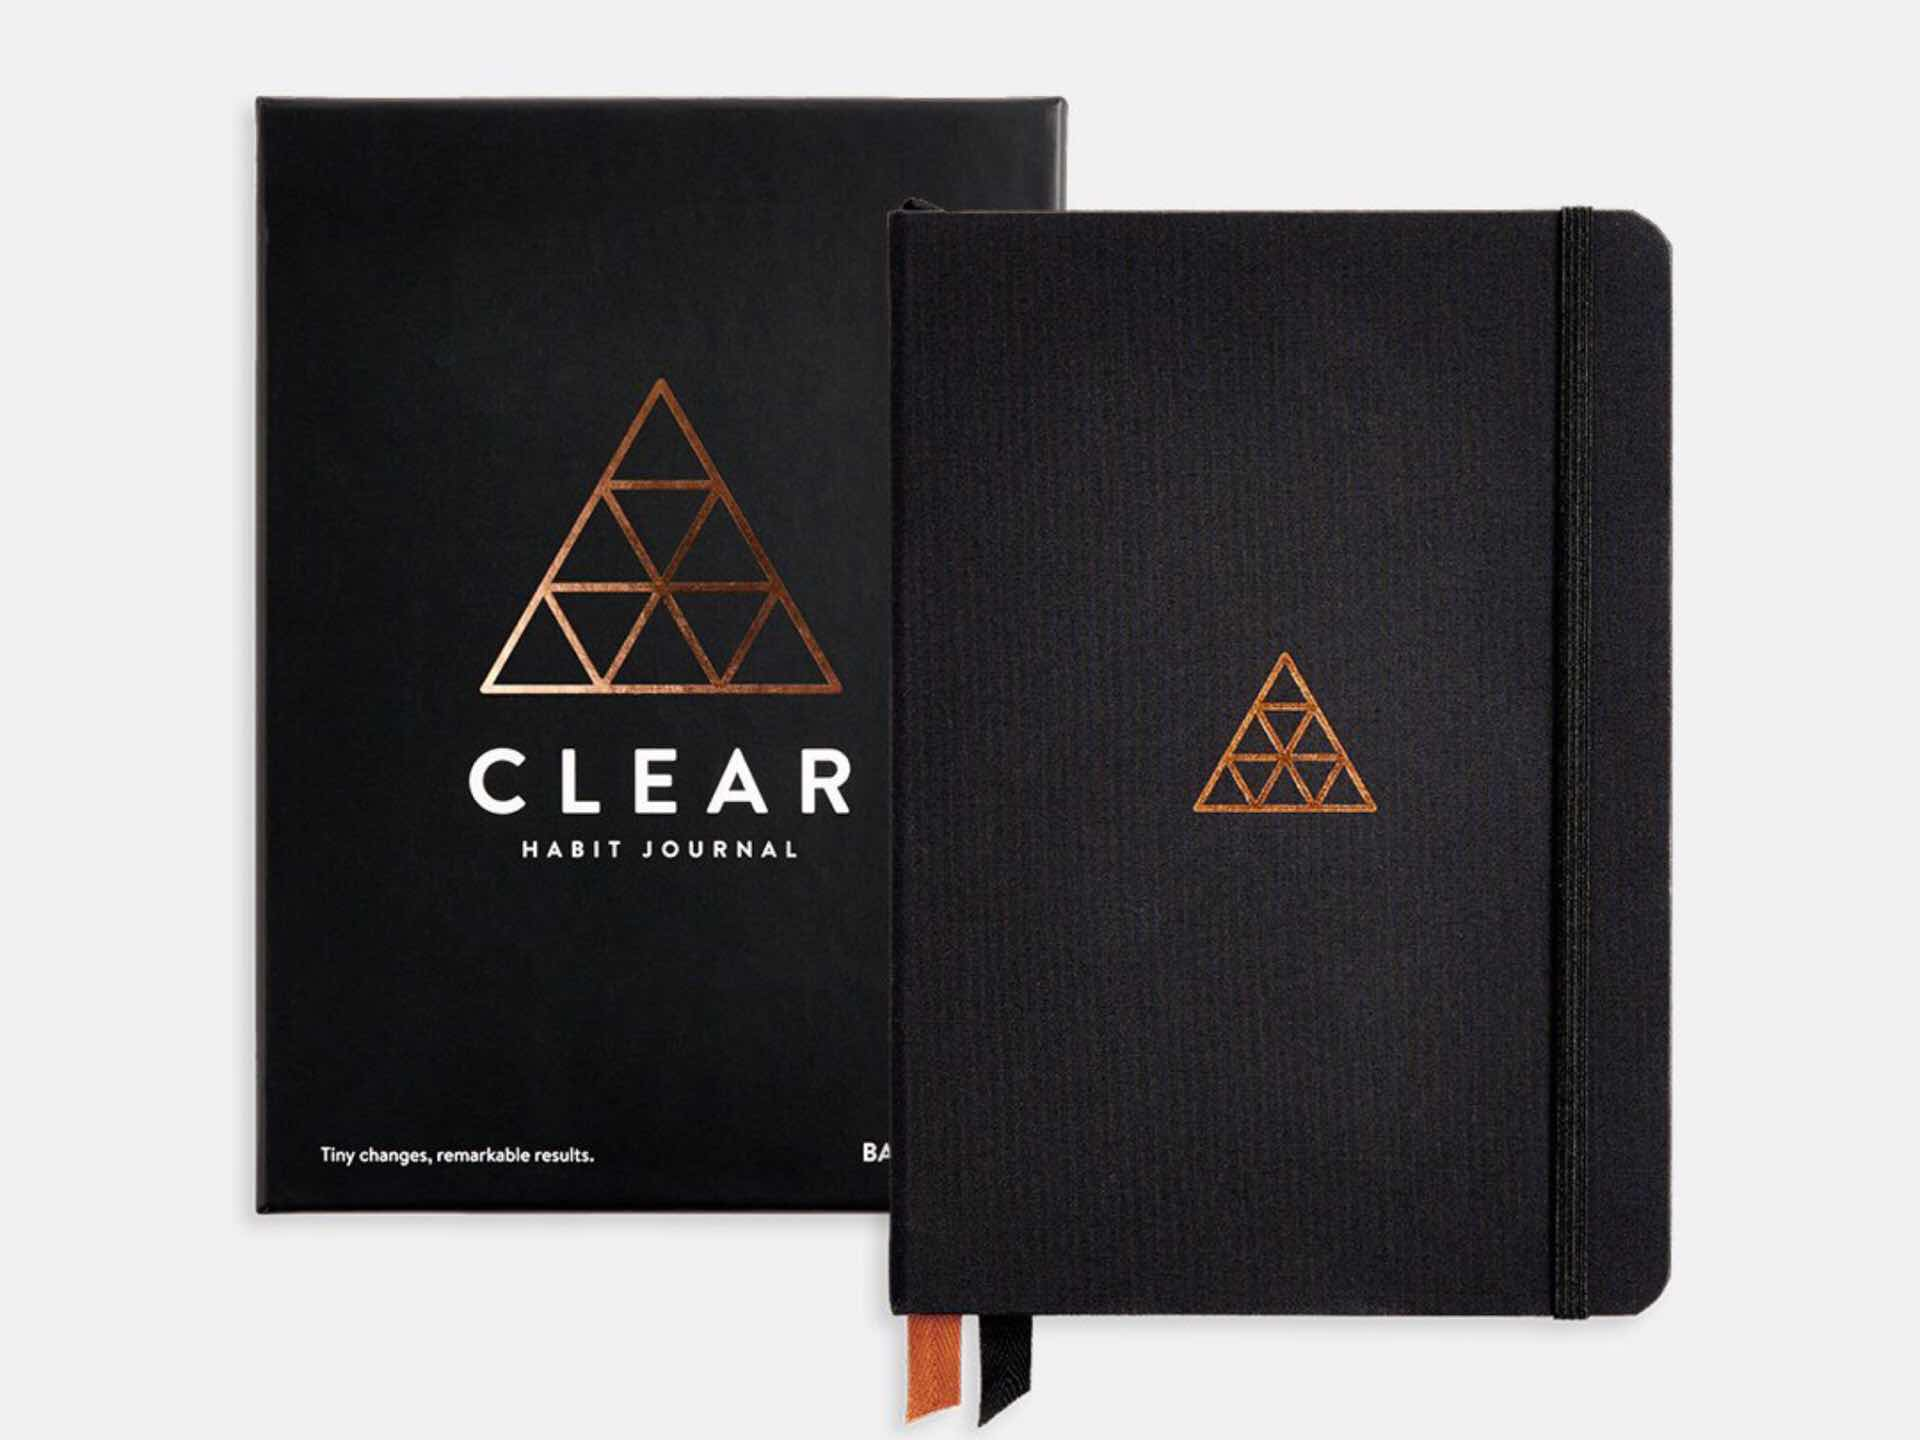 baron-fig-clear-habit-journal